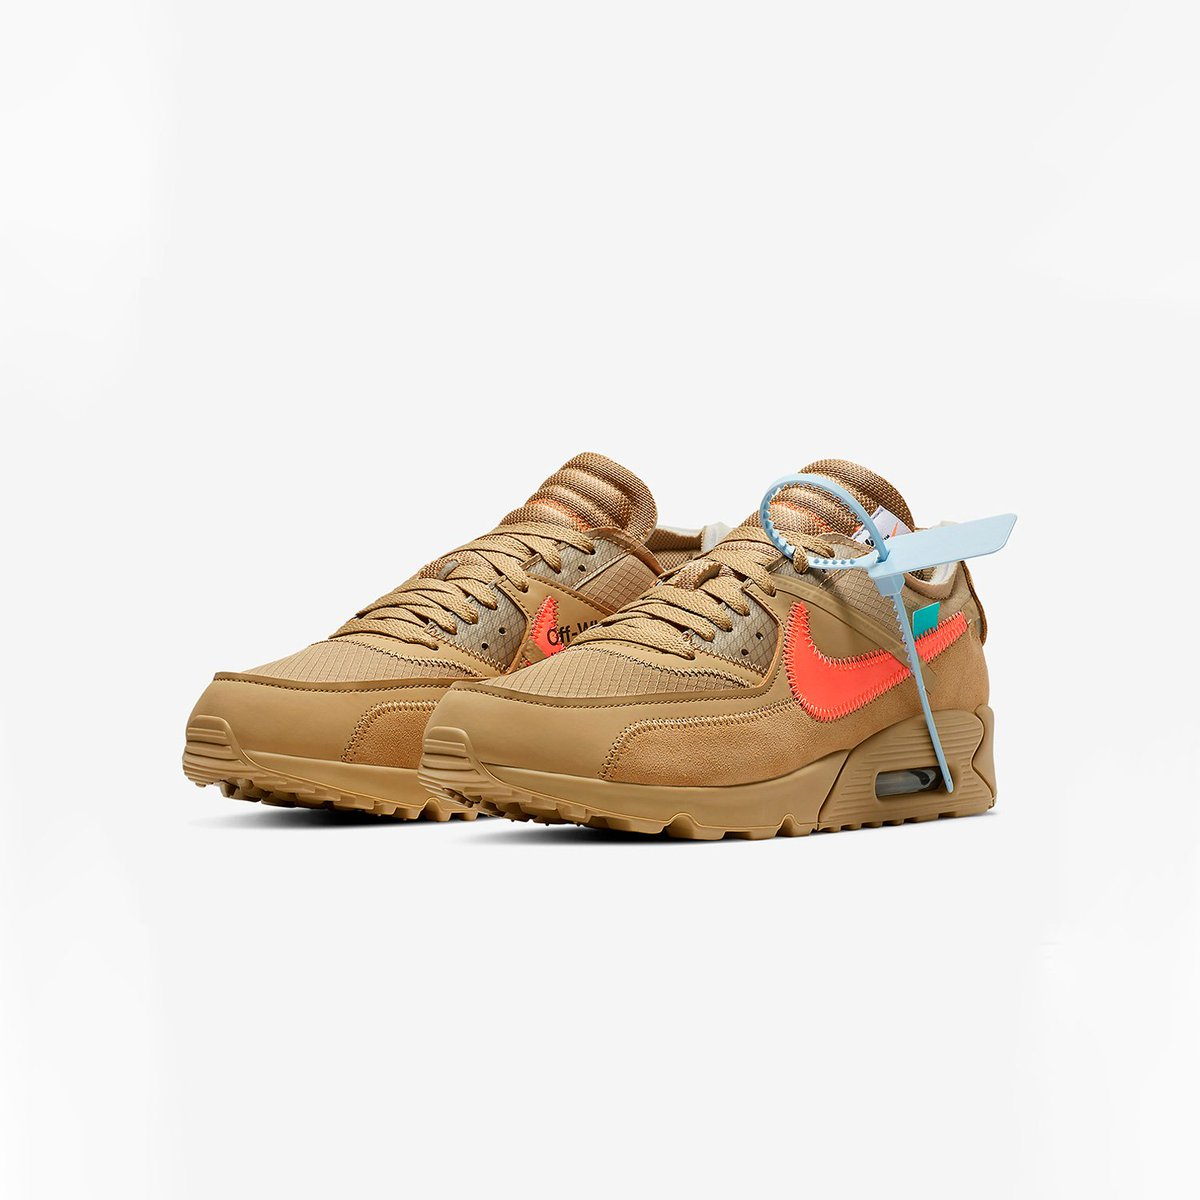 a46726f4a6b You must enter now to participate: http://ow.ly/NiEC30nwPGU #nike #offwhite  #airmax90 #footdistrictpic.twitter.com/sS1e4m6VFH